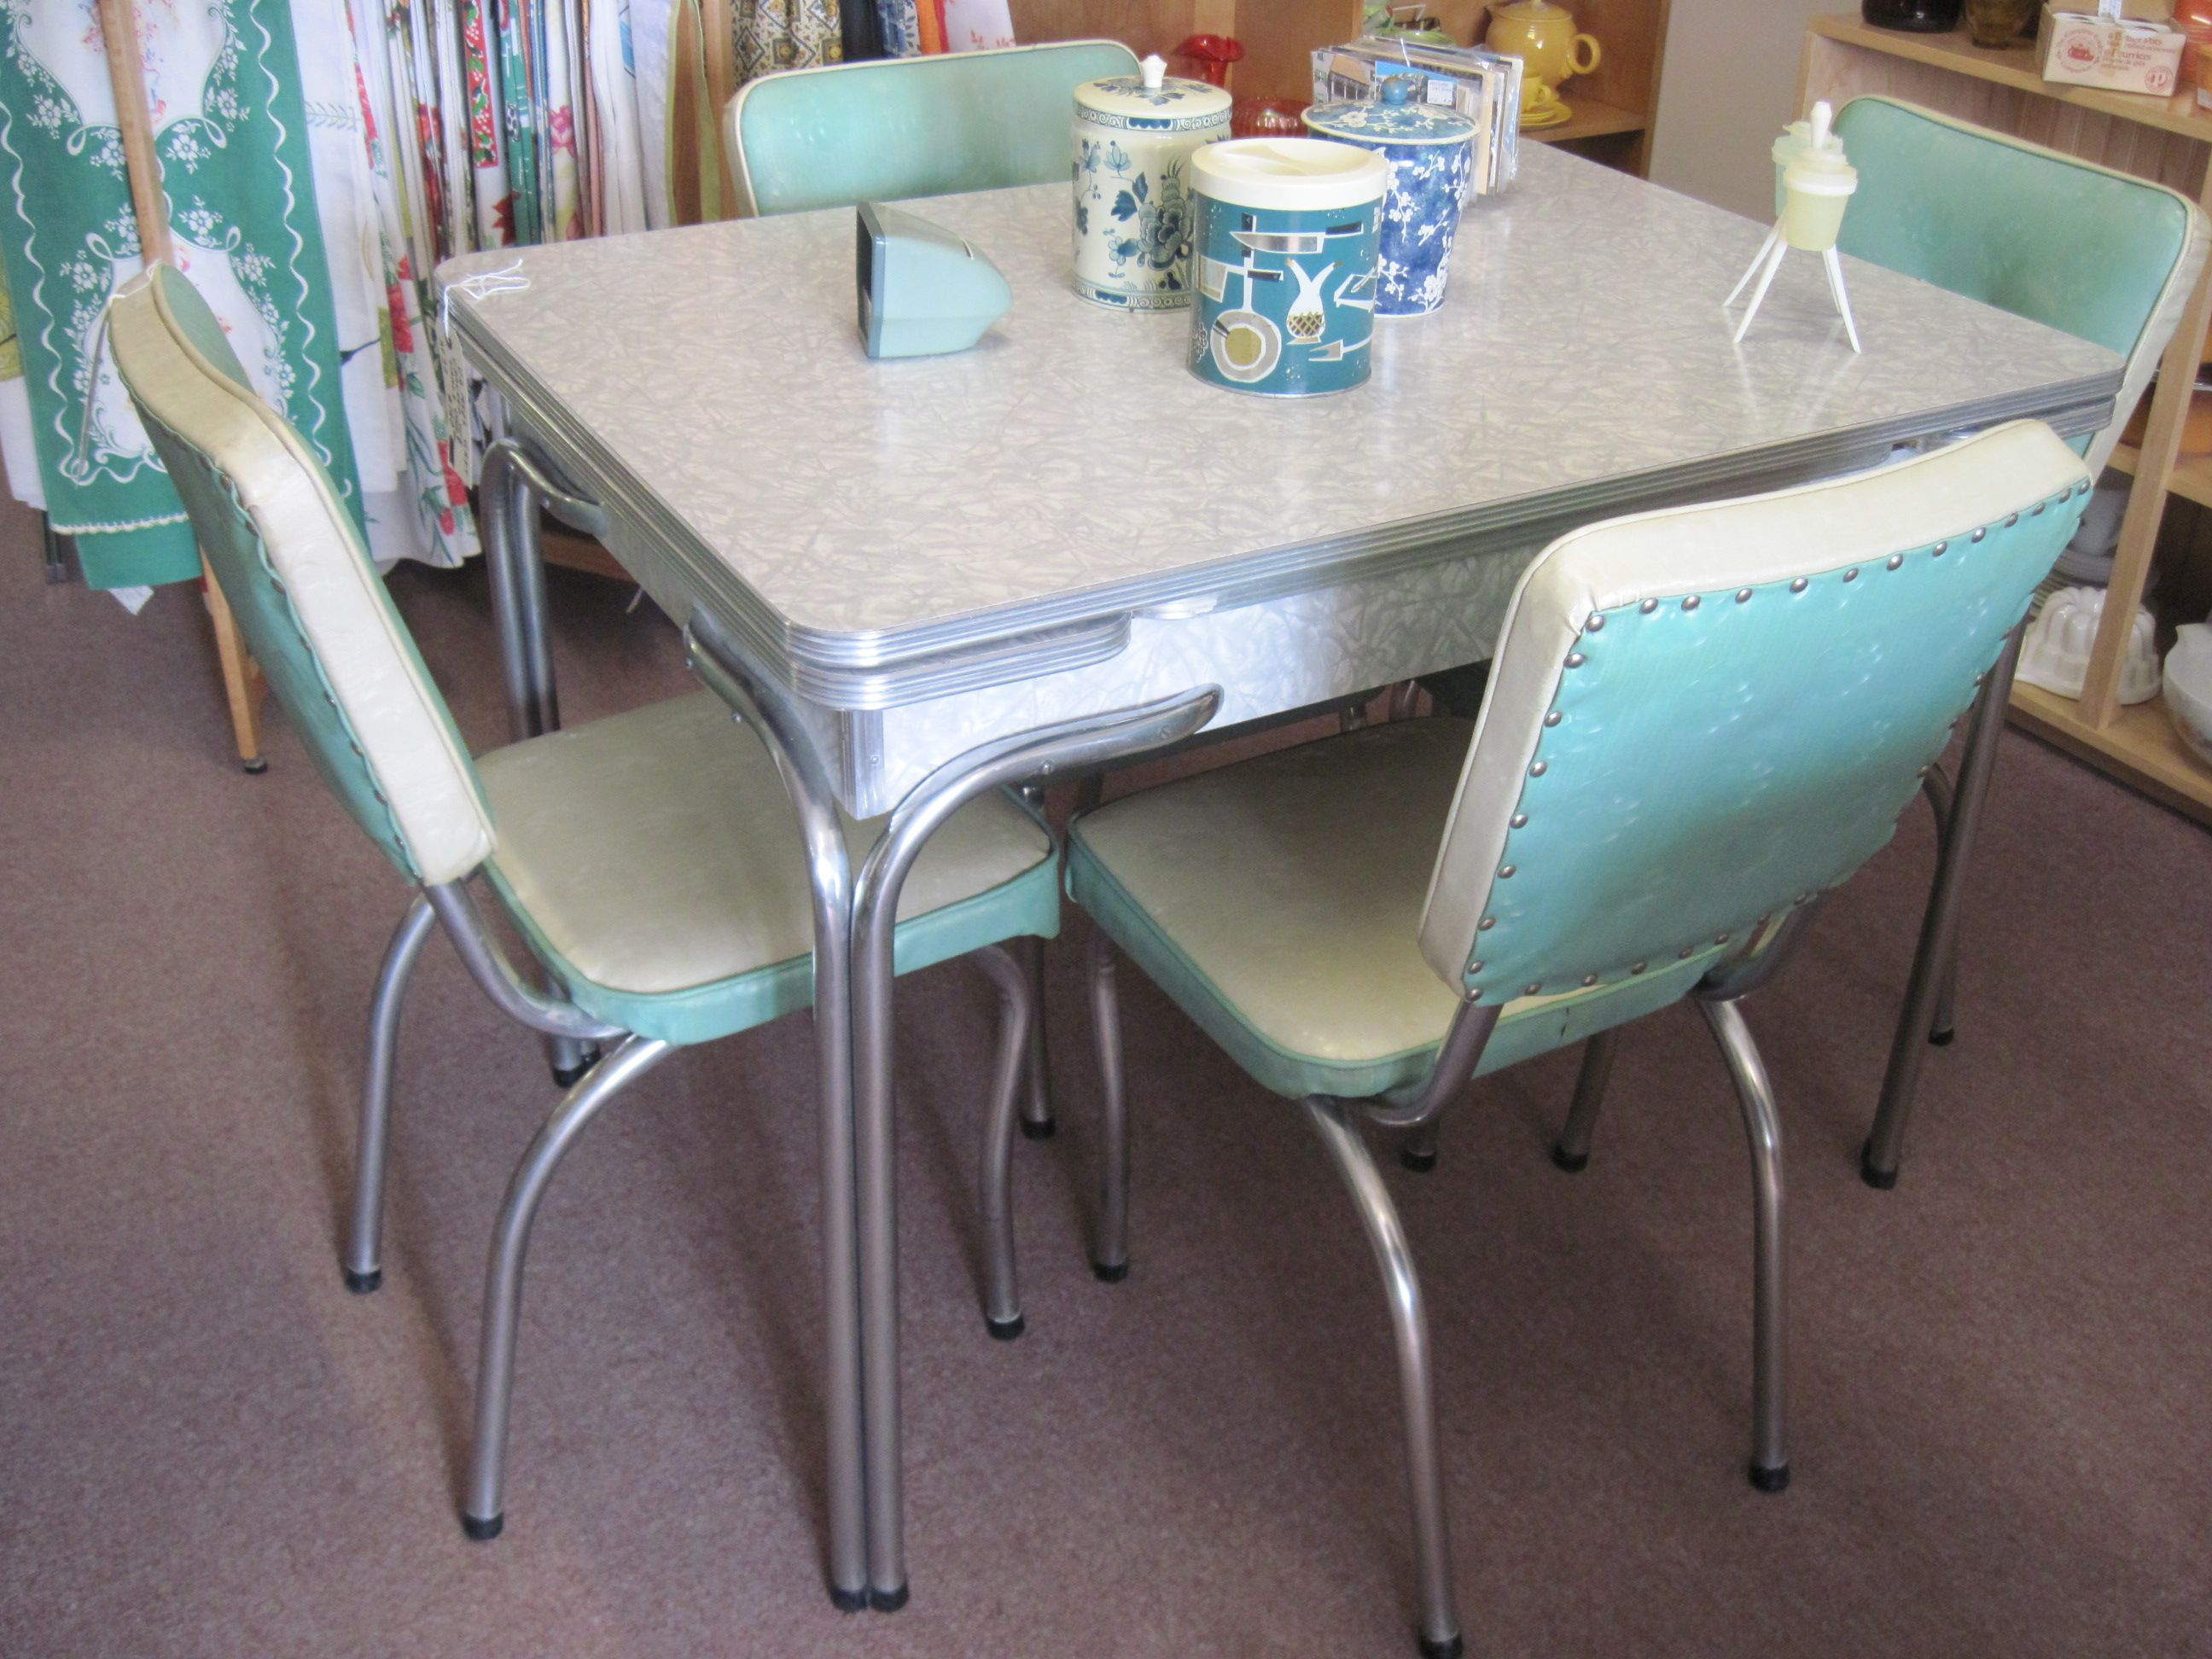 Chrome Dinette Blue And White With Grey Cracked Ice Tabletop Love The Two Tone Chairs